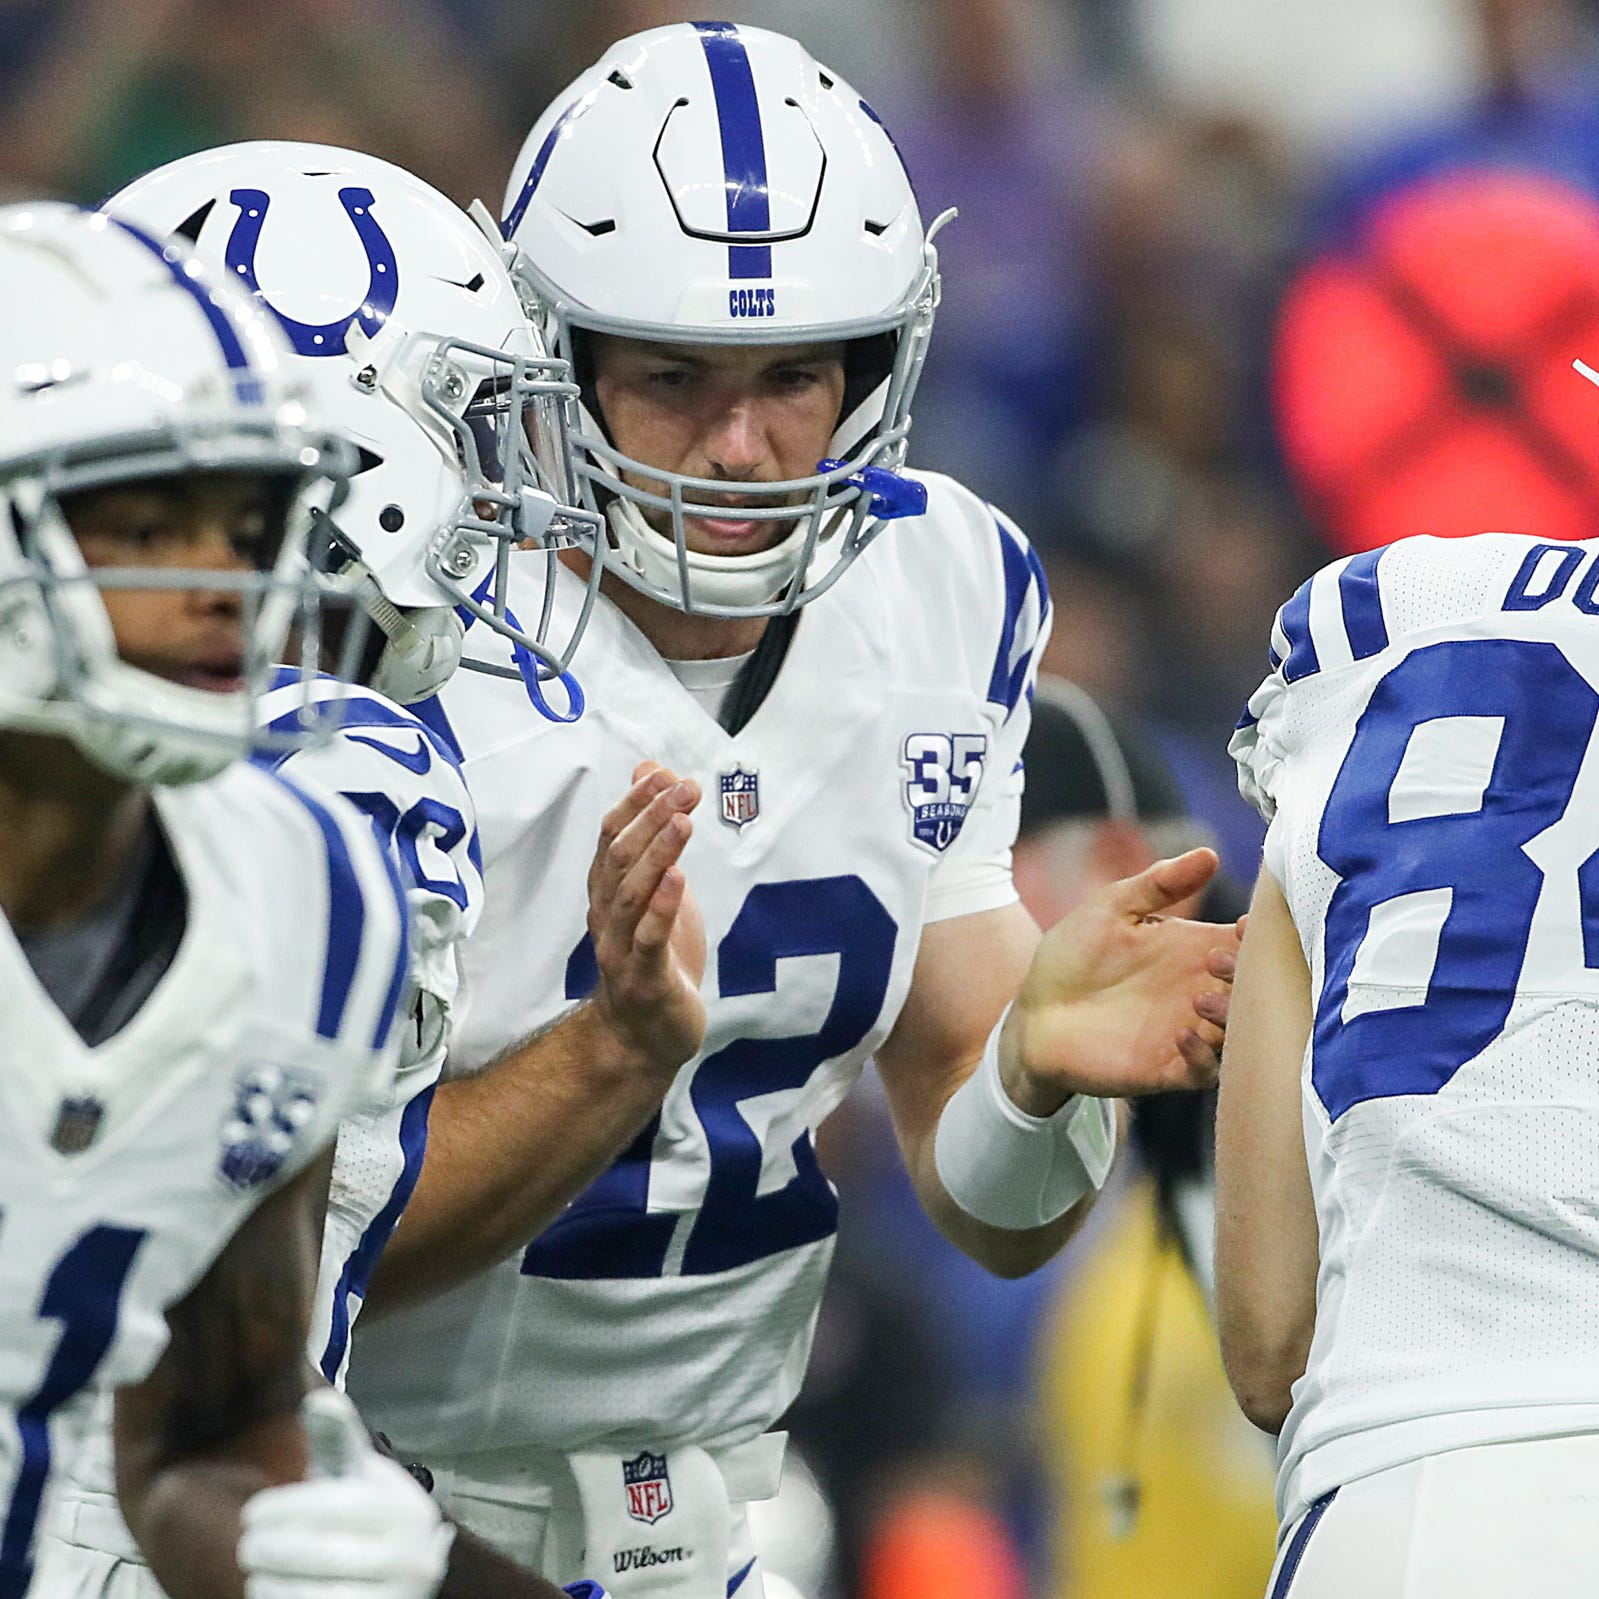 Colts QB Andrew Luck says he plays 'not very well'  against Ravens